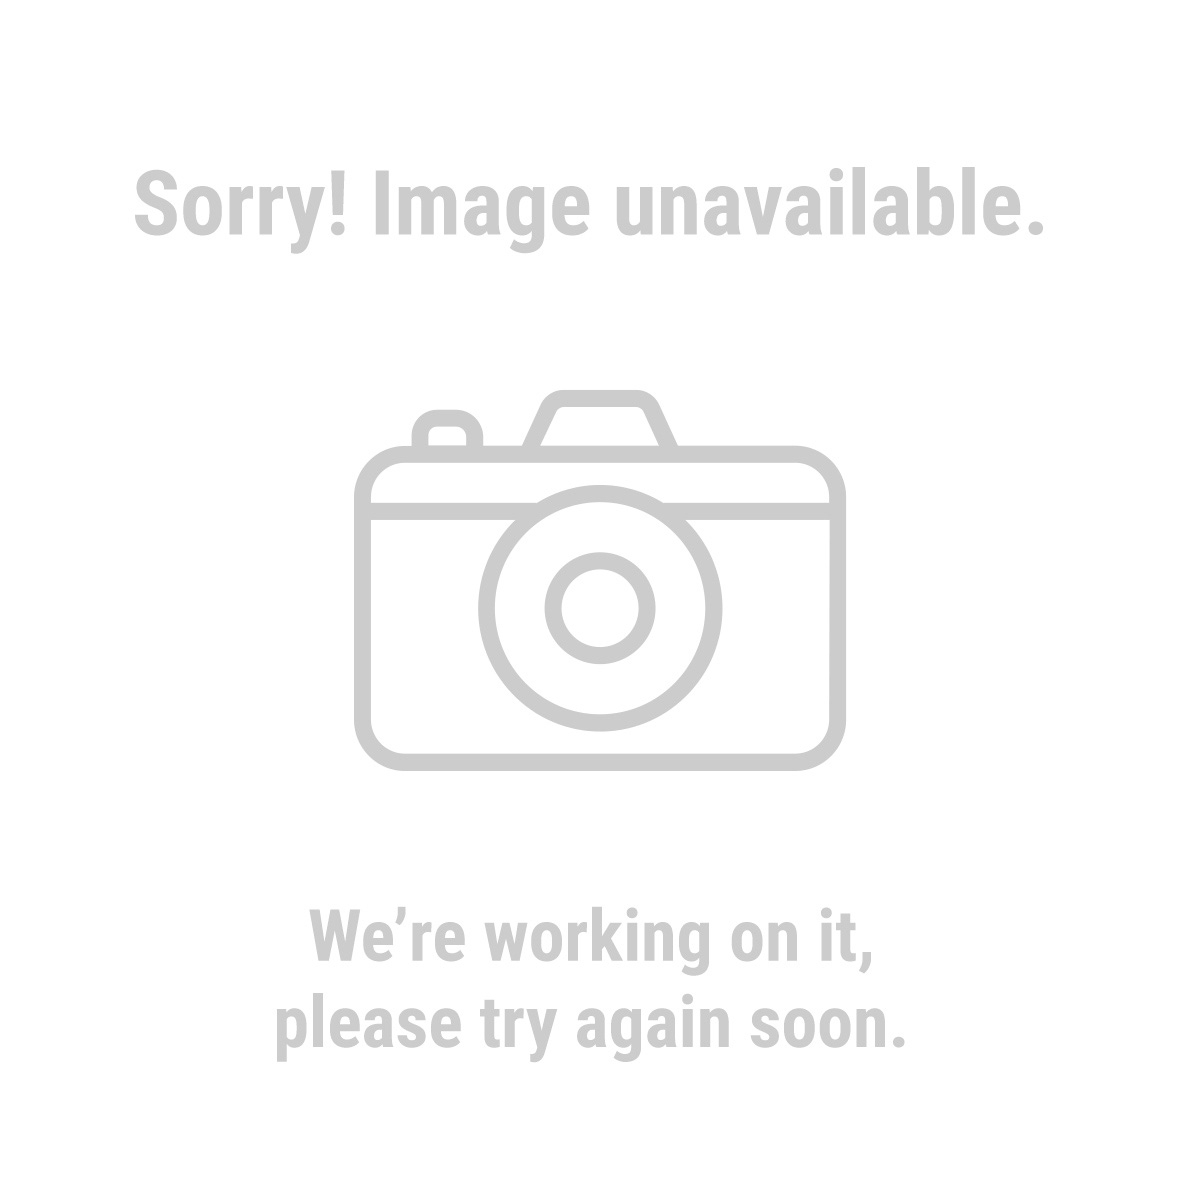 Chicago Electric 67515 120 Volt 15 Amp GFCI Outlet With LED - Ivory